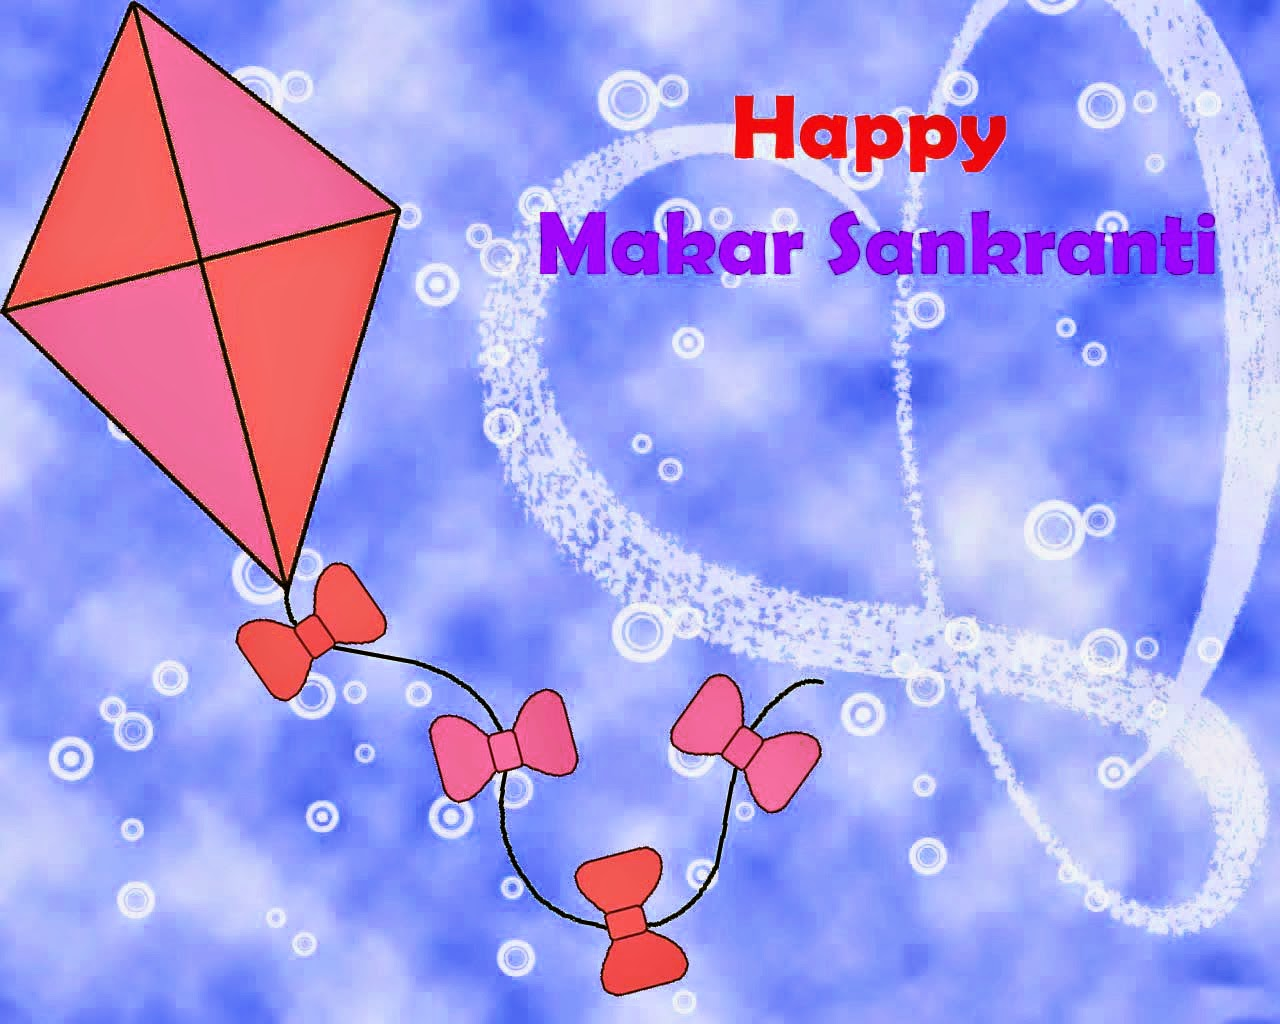 Happy Makar sankarati Kites Nice Hd wallpaper 2015